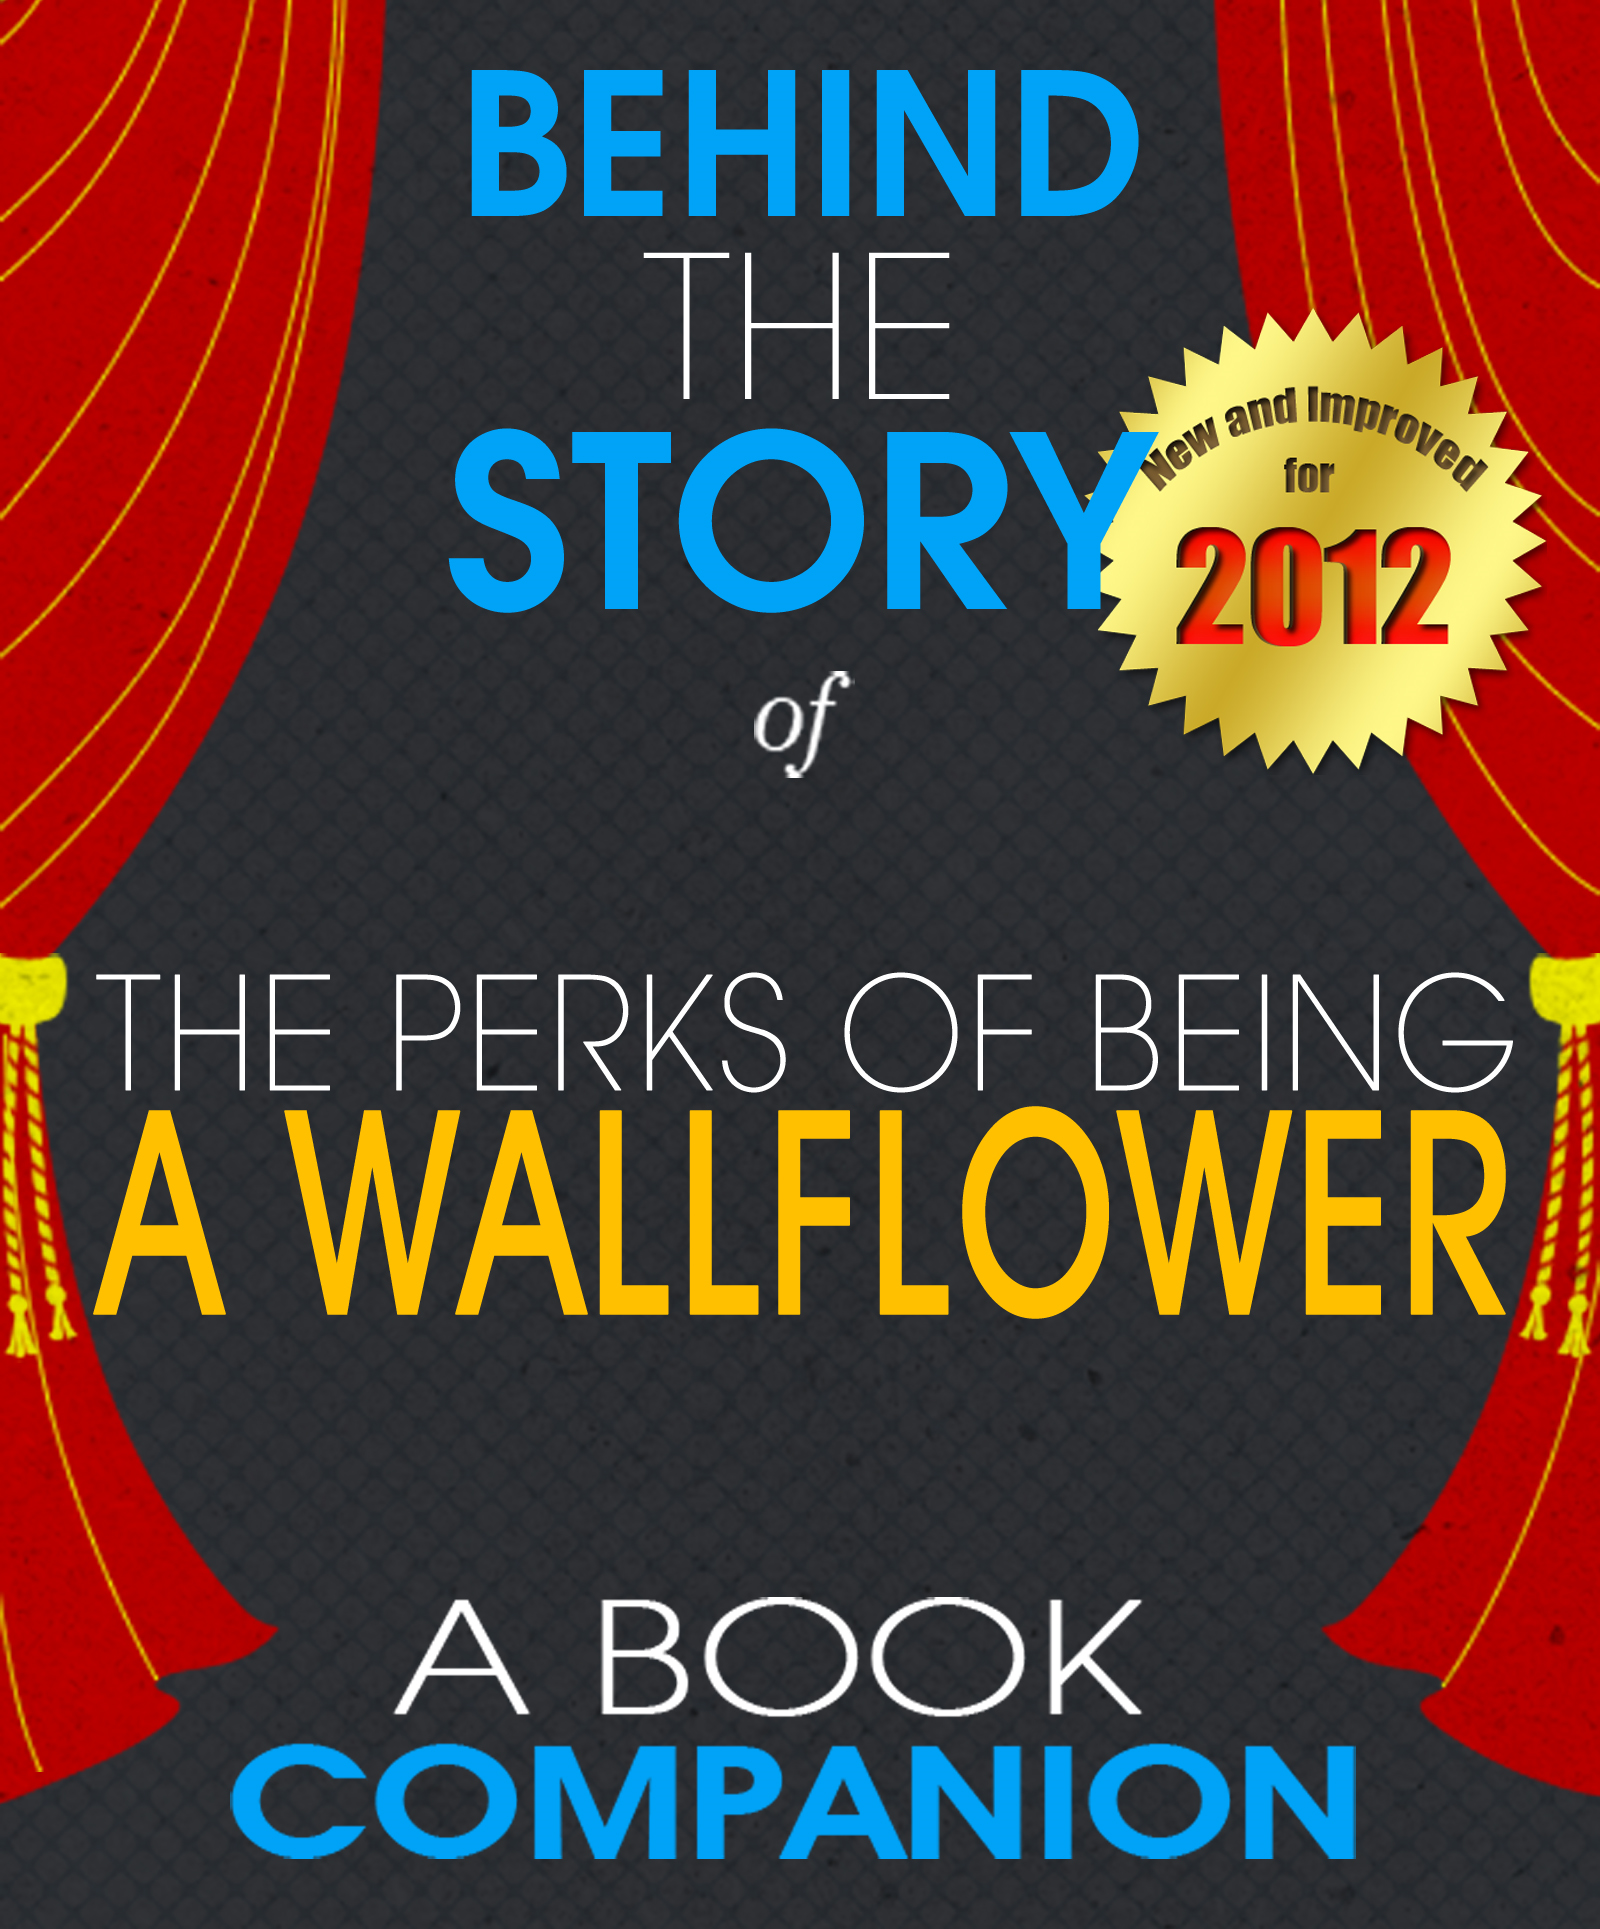 The Perks of Being a Wallflower: Behind the Story